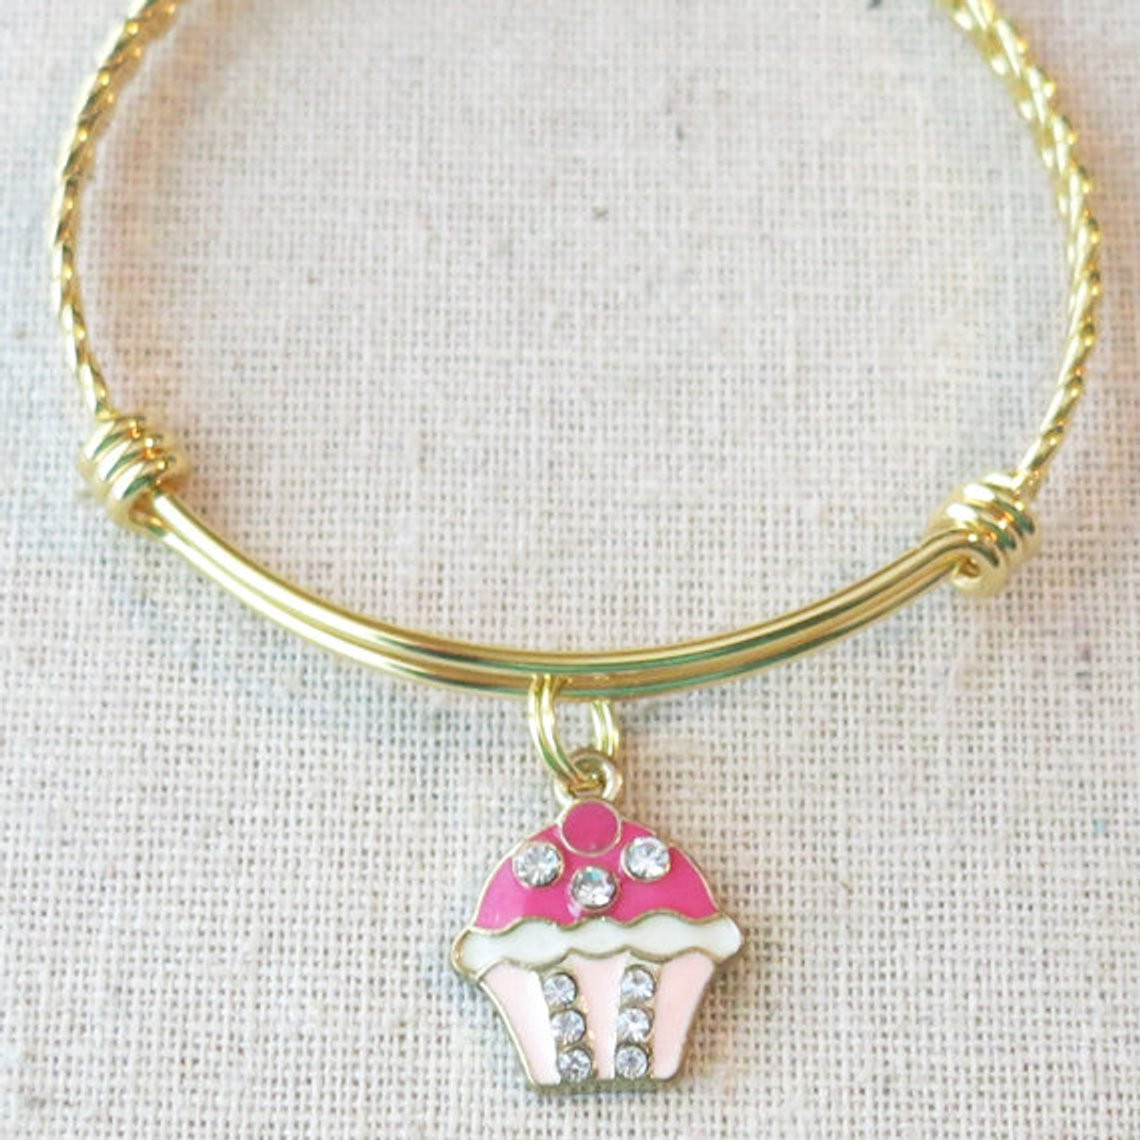 1 PINK AND GOLD ENAMEL RHINESTONE CUP CAKE CLIP ON CHARM FOR CHARM BRACELET